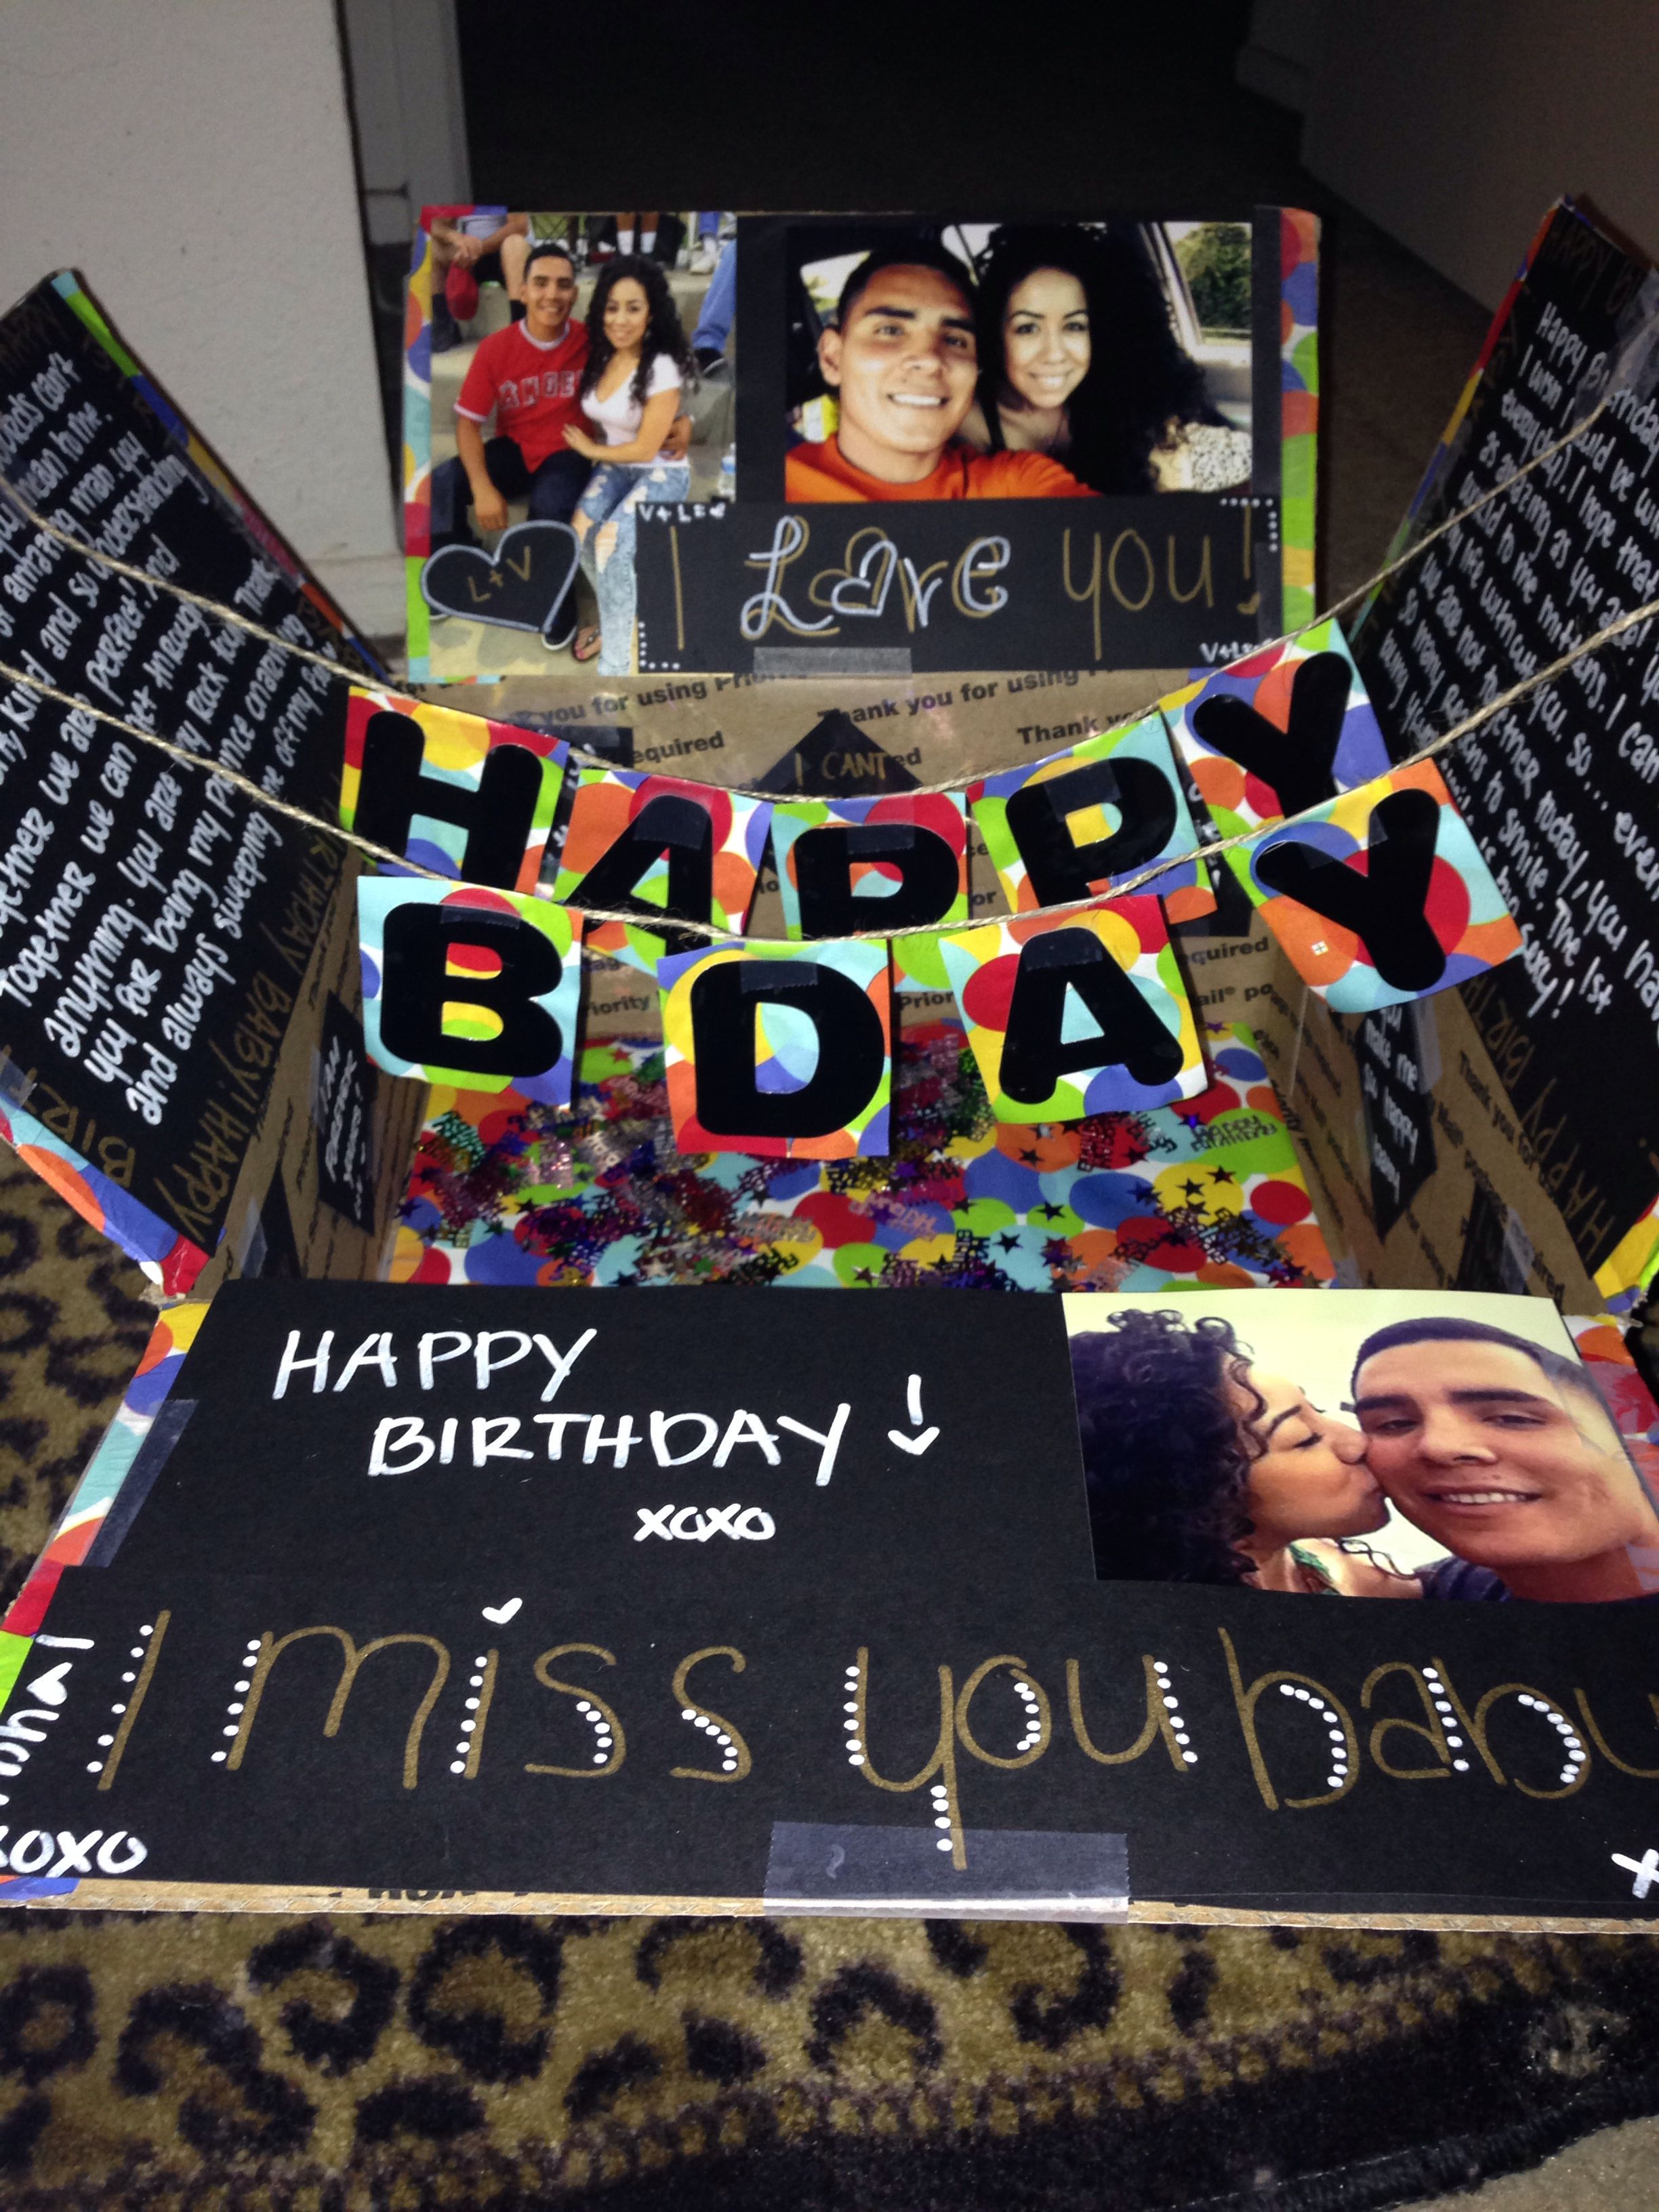 Meu Missionario Birthday Care Packages Happy Boyfriend Girlfriend Gifts